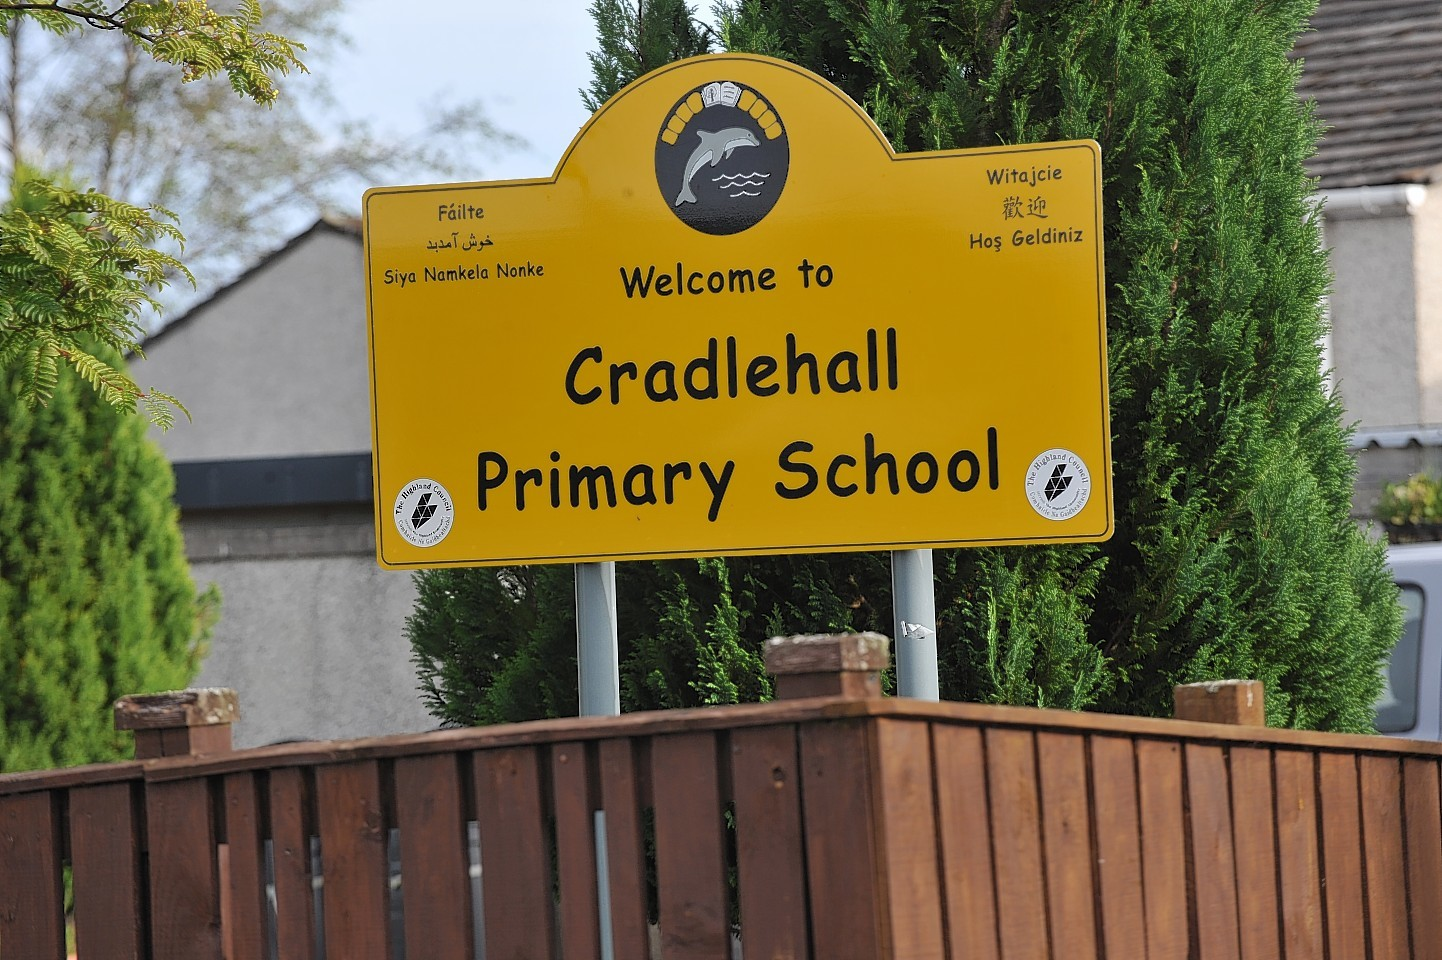 Cradlehall Primary School is one of a number of  schools under pressure in the area